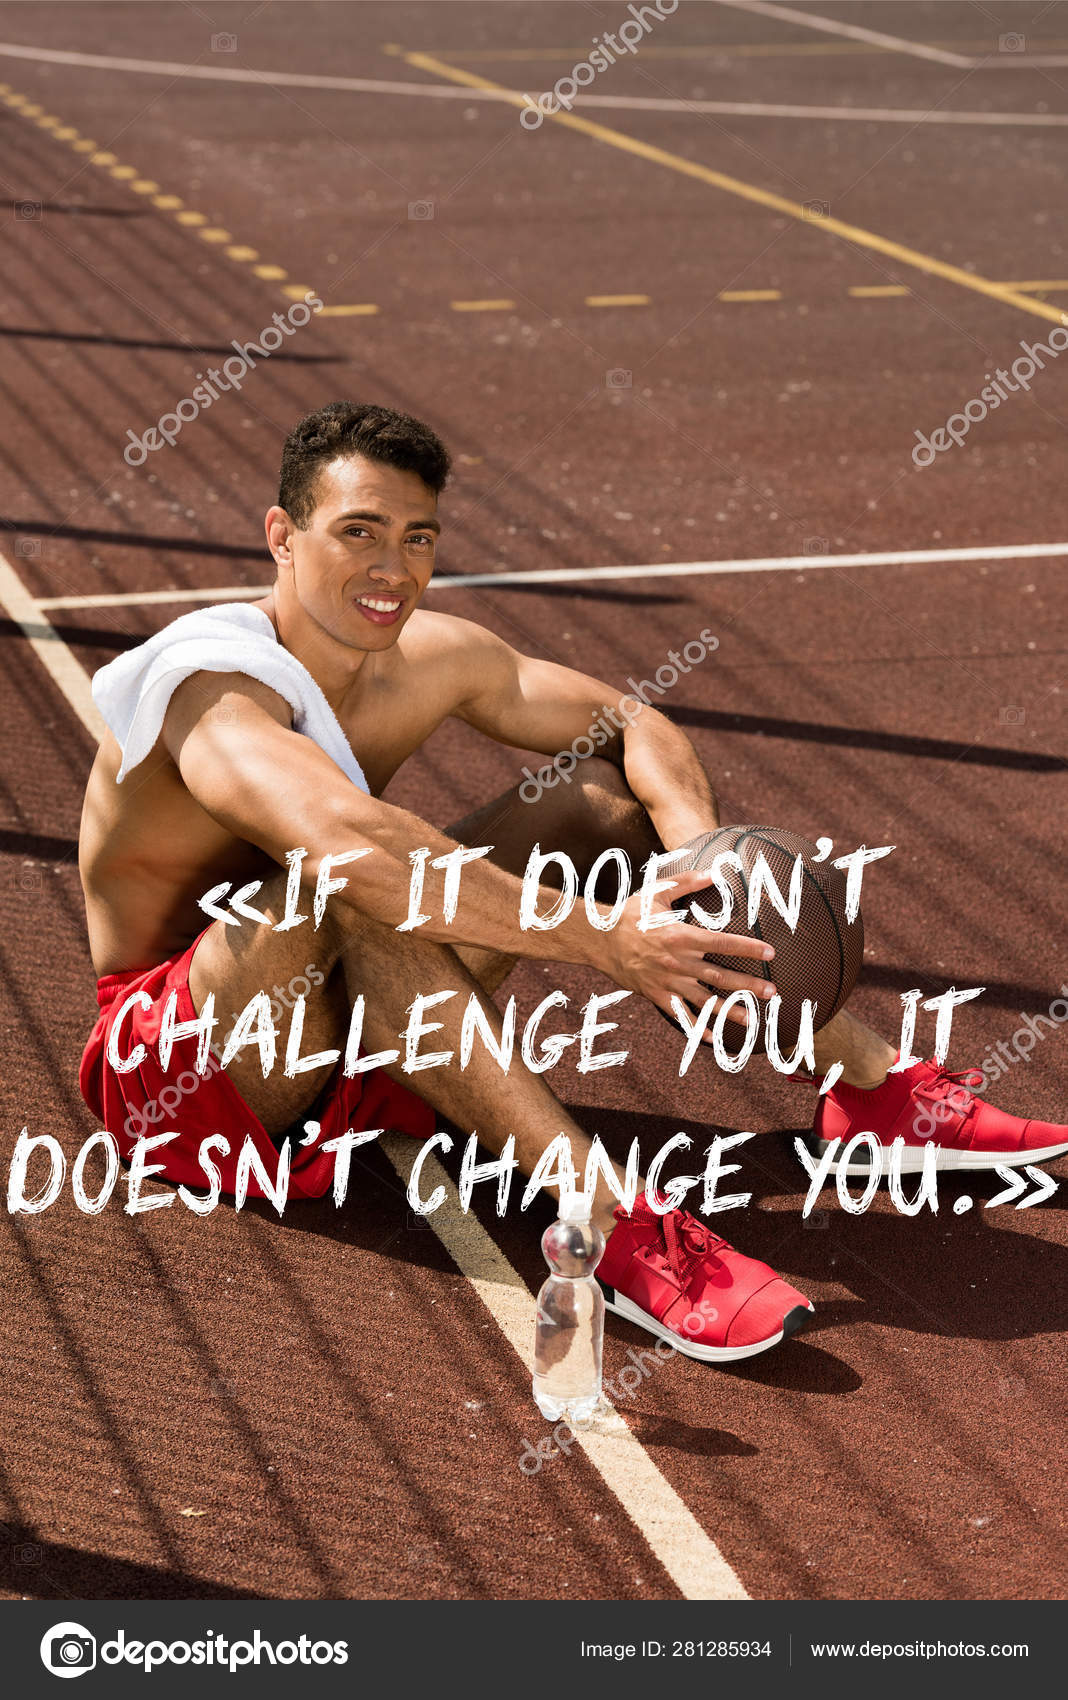 456f4f413869 If it doesnt challenge you it doesnt change you lettering on photo of  smiling shirtless mixed race basketball player with ball and towel sitting  at ...